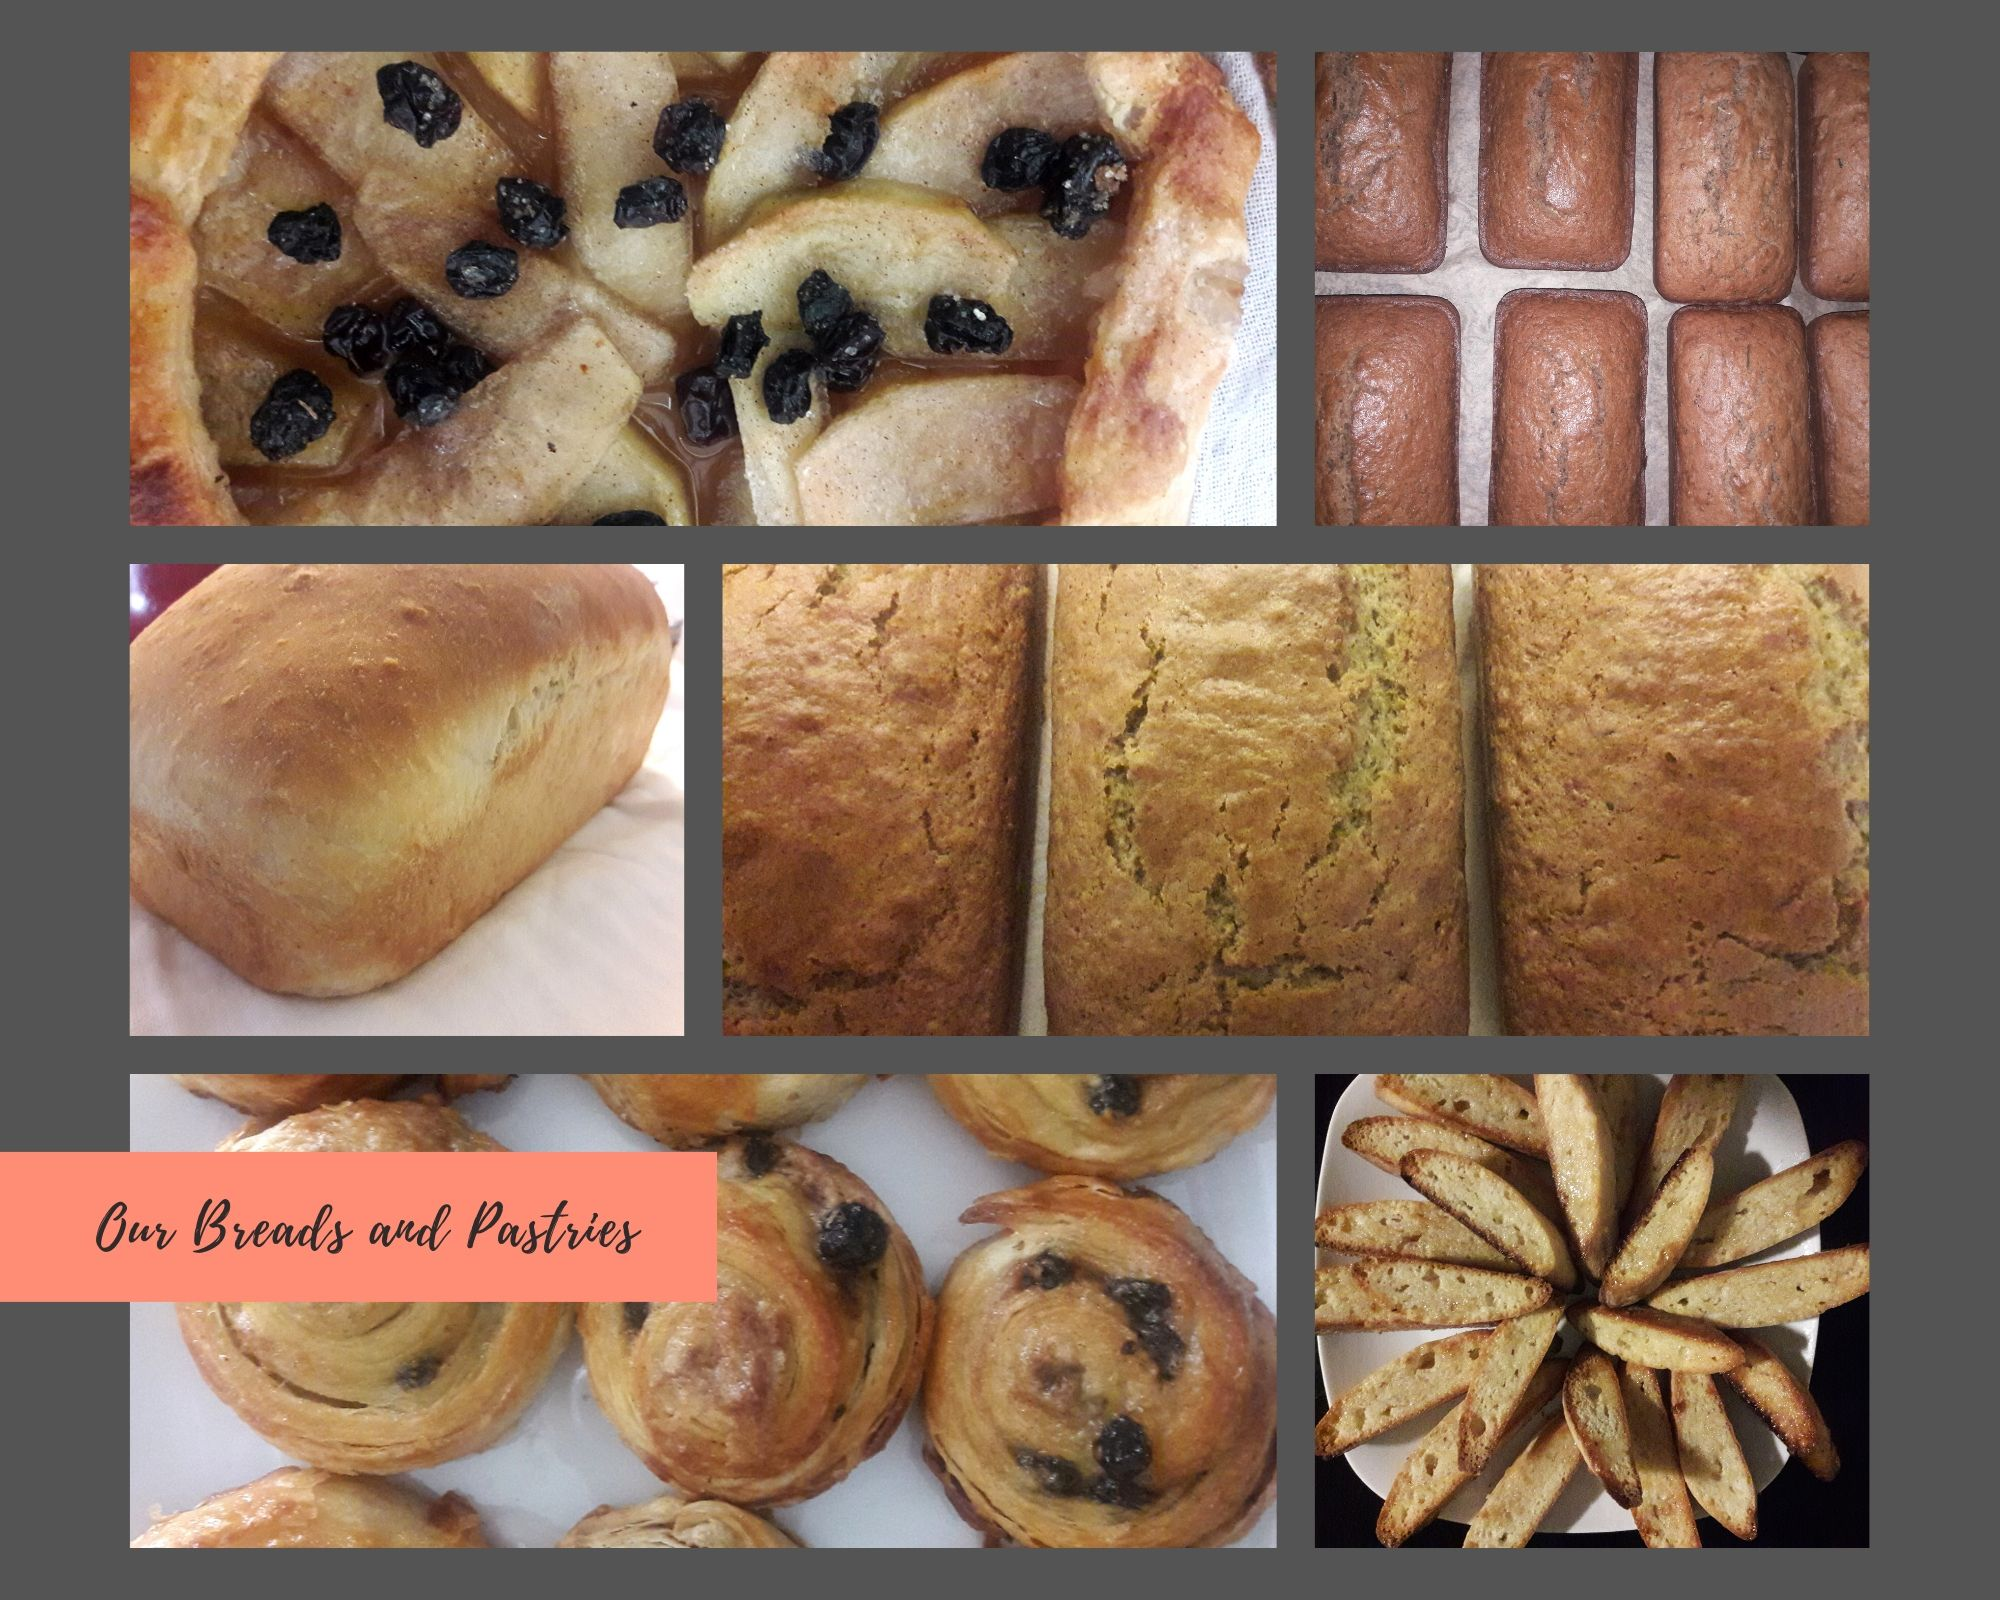 Our Breads and Pastries